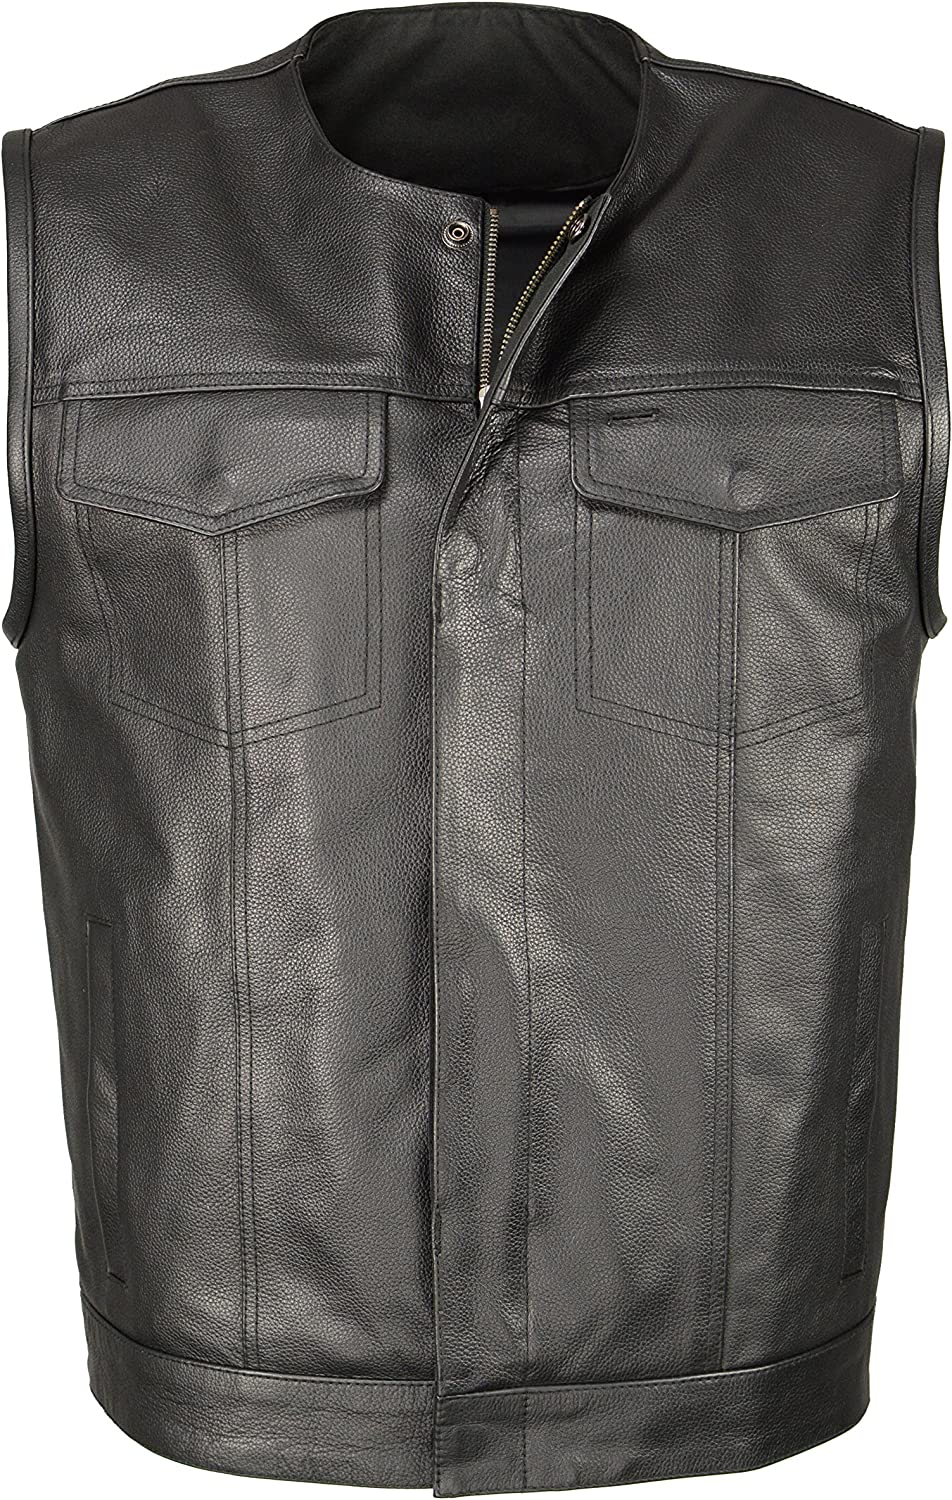 M Boss Motorcycle Apparel BOS13504 Men's Black Leather Collarless Club Style Vest with Quick Draw Pocket - Large